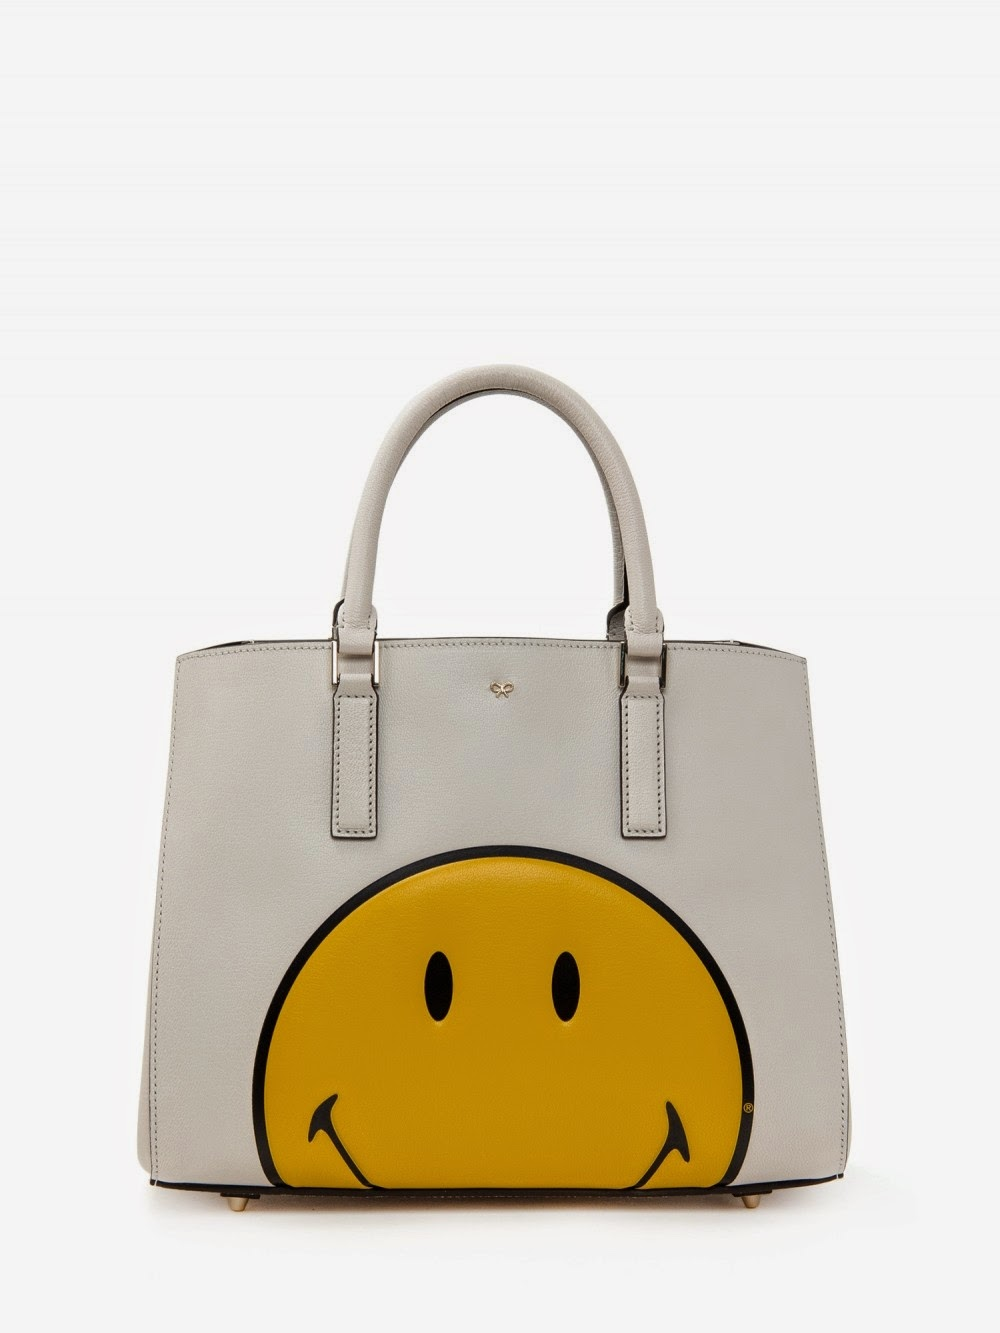 Did This Bag Made You Smile Also Super Cute Featured By Ms Kris Aquino On Her Website Blog Http Www Withlovekrisaquino